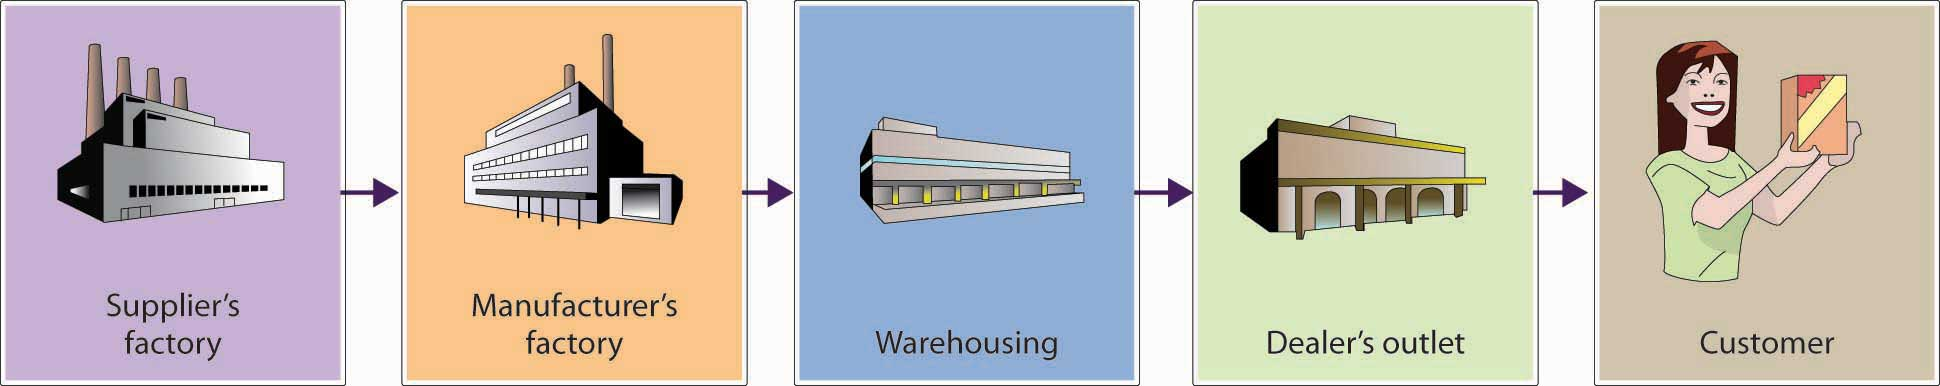 A Simplified Supply Chain: Supplier's factory -> Manufacturer's factory -> Warehousing -> Dealer's outlet -> Customer